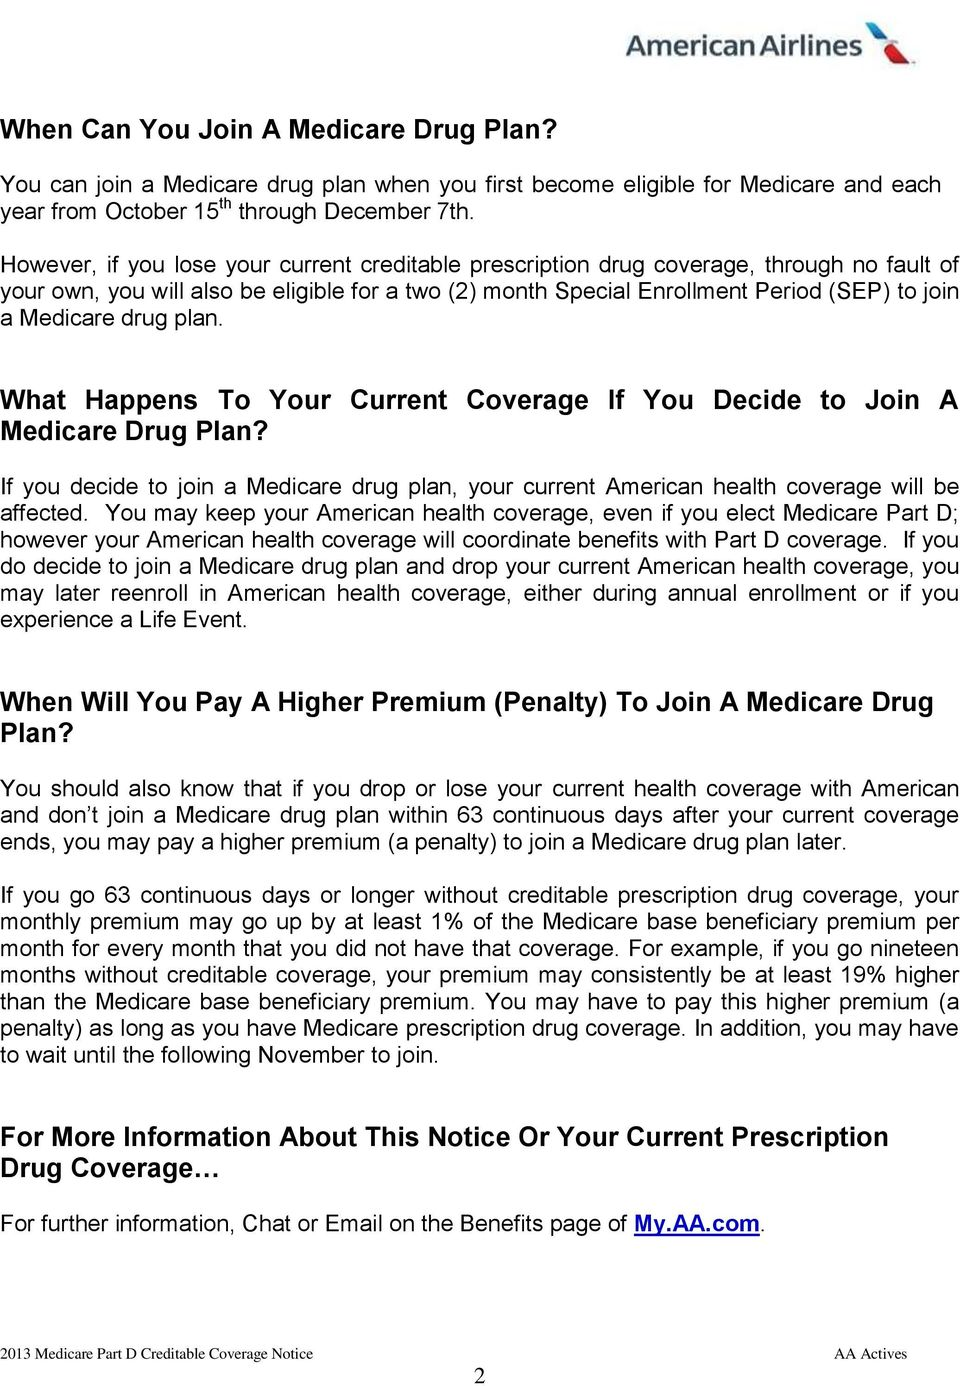 drug plan. What Happens To Your Current Coverage If You Decide to Join A Medicare Drug Plan? If you decide to join a Medicare drug plan, your current American health coverage will be affected.